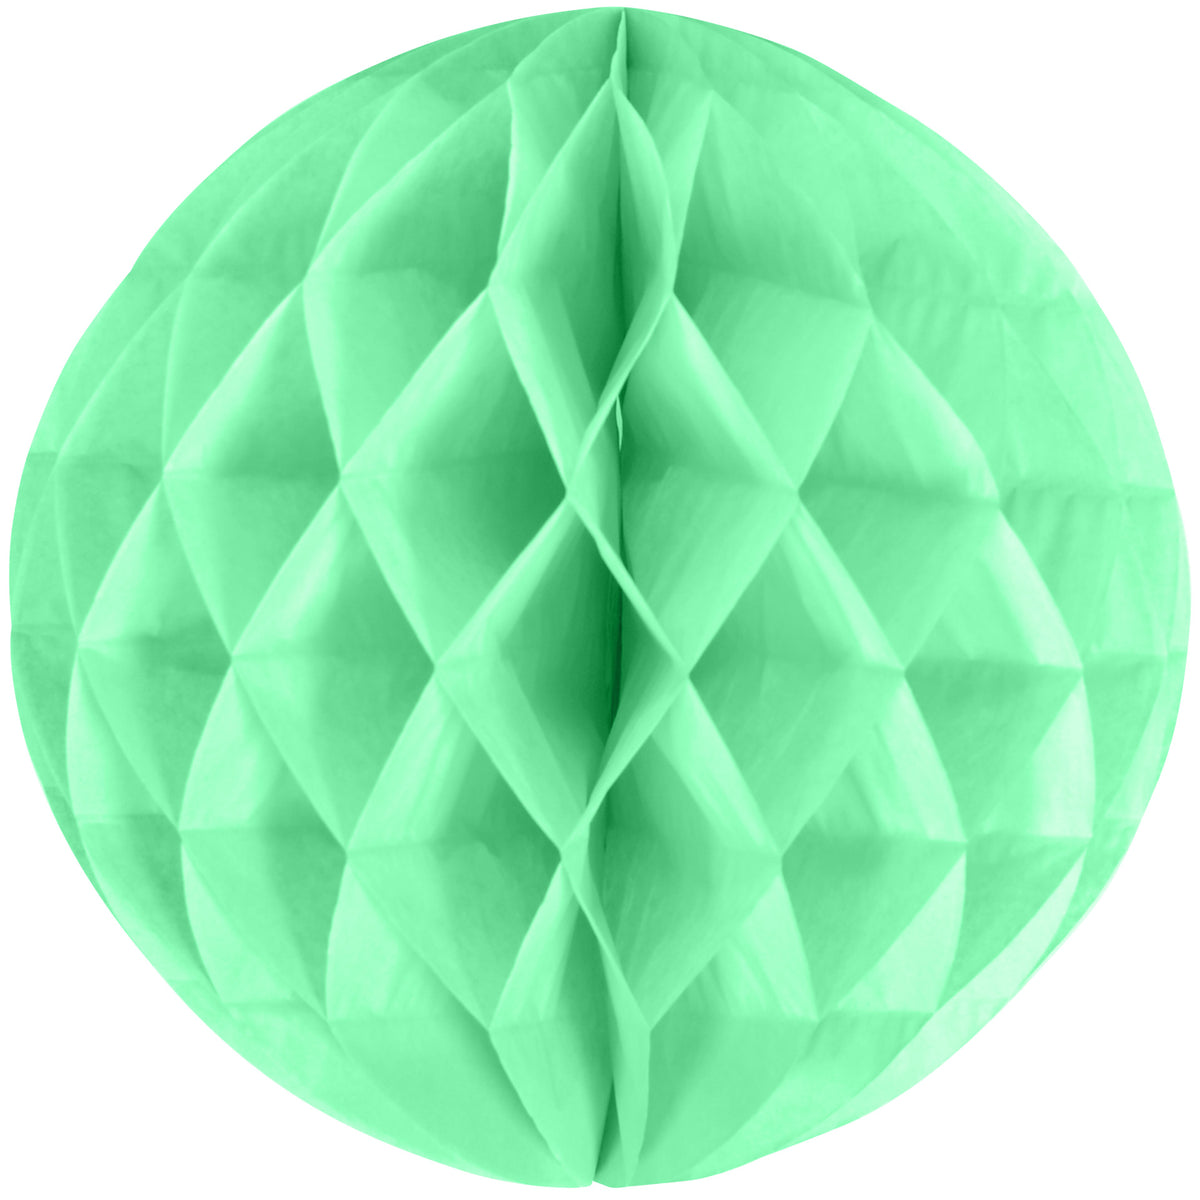 10 IN HONEYCOMB TISSUE BALL MINT GREEN  EACH